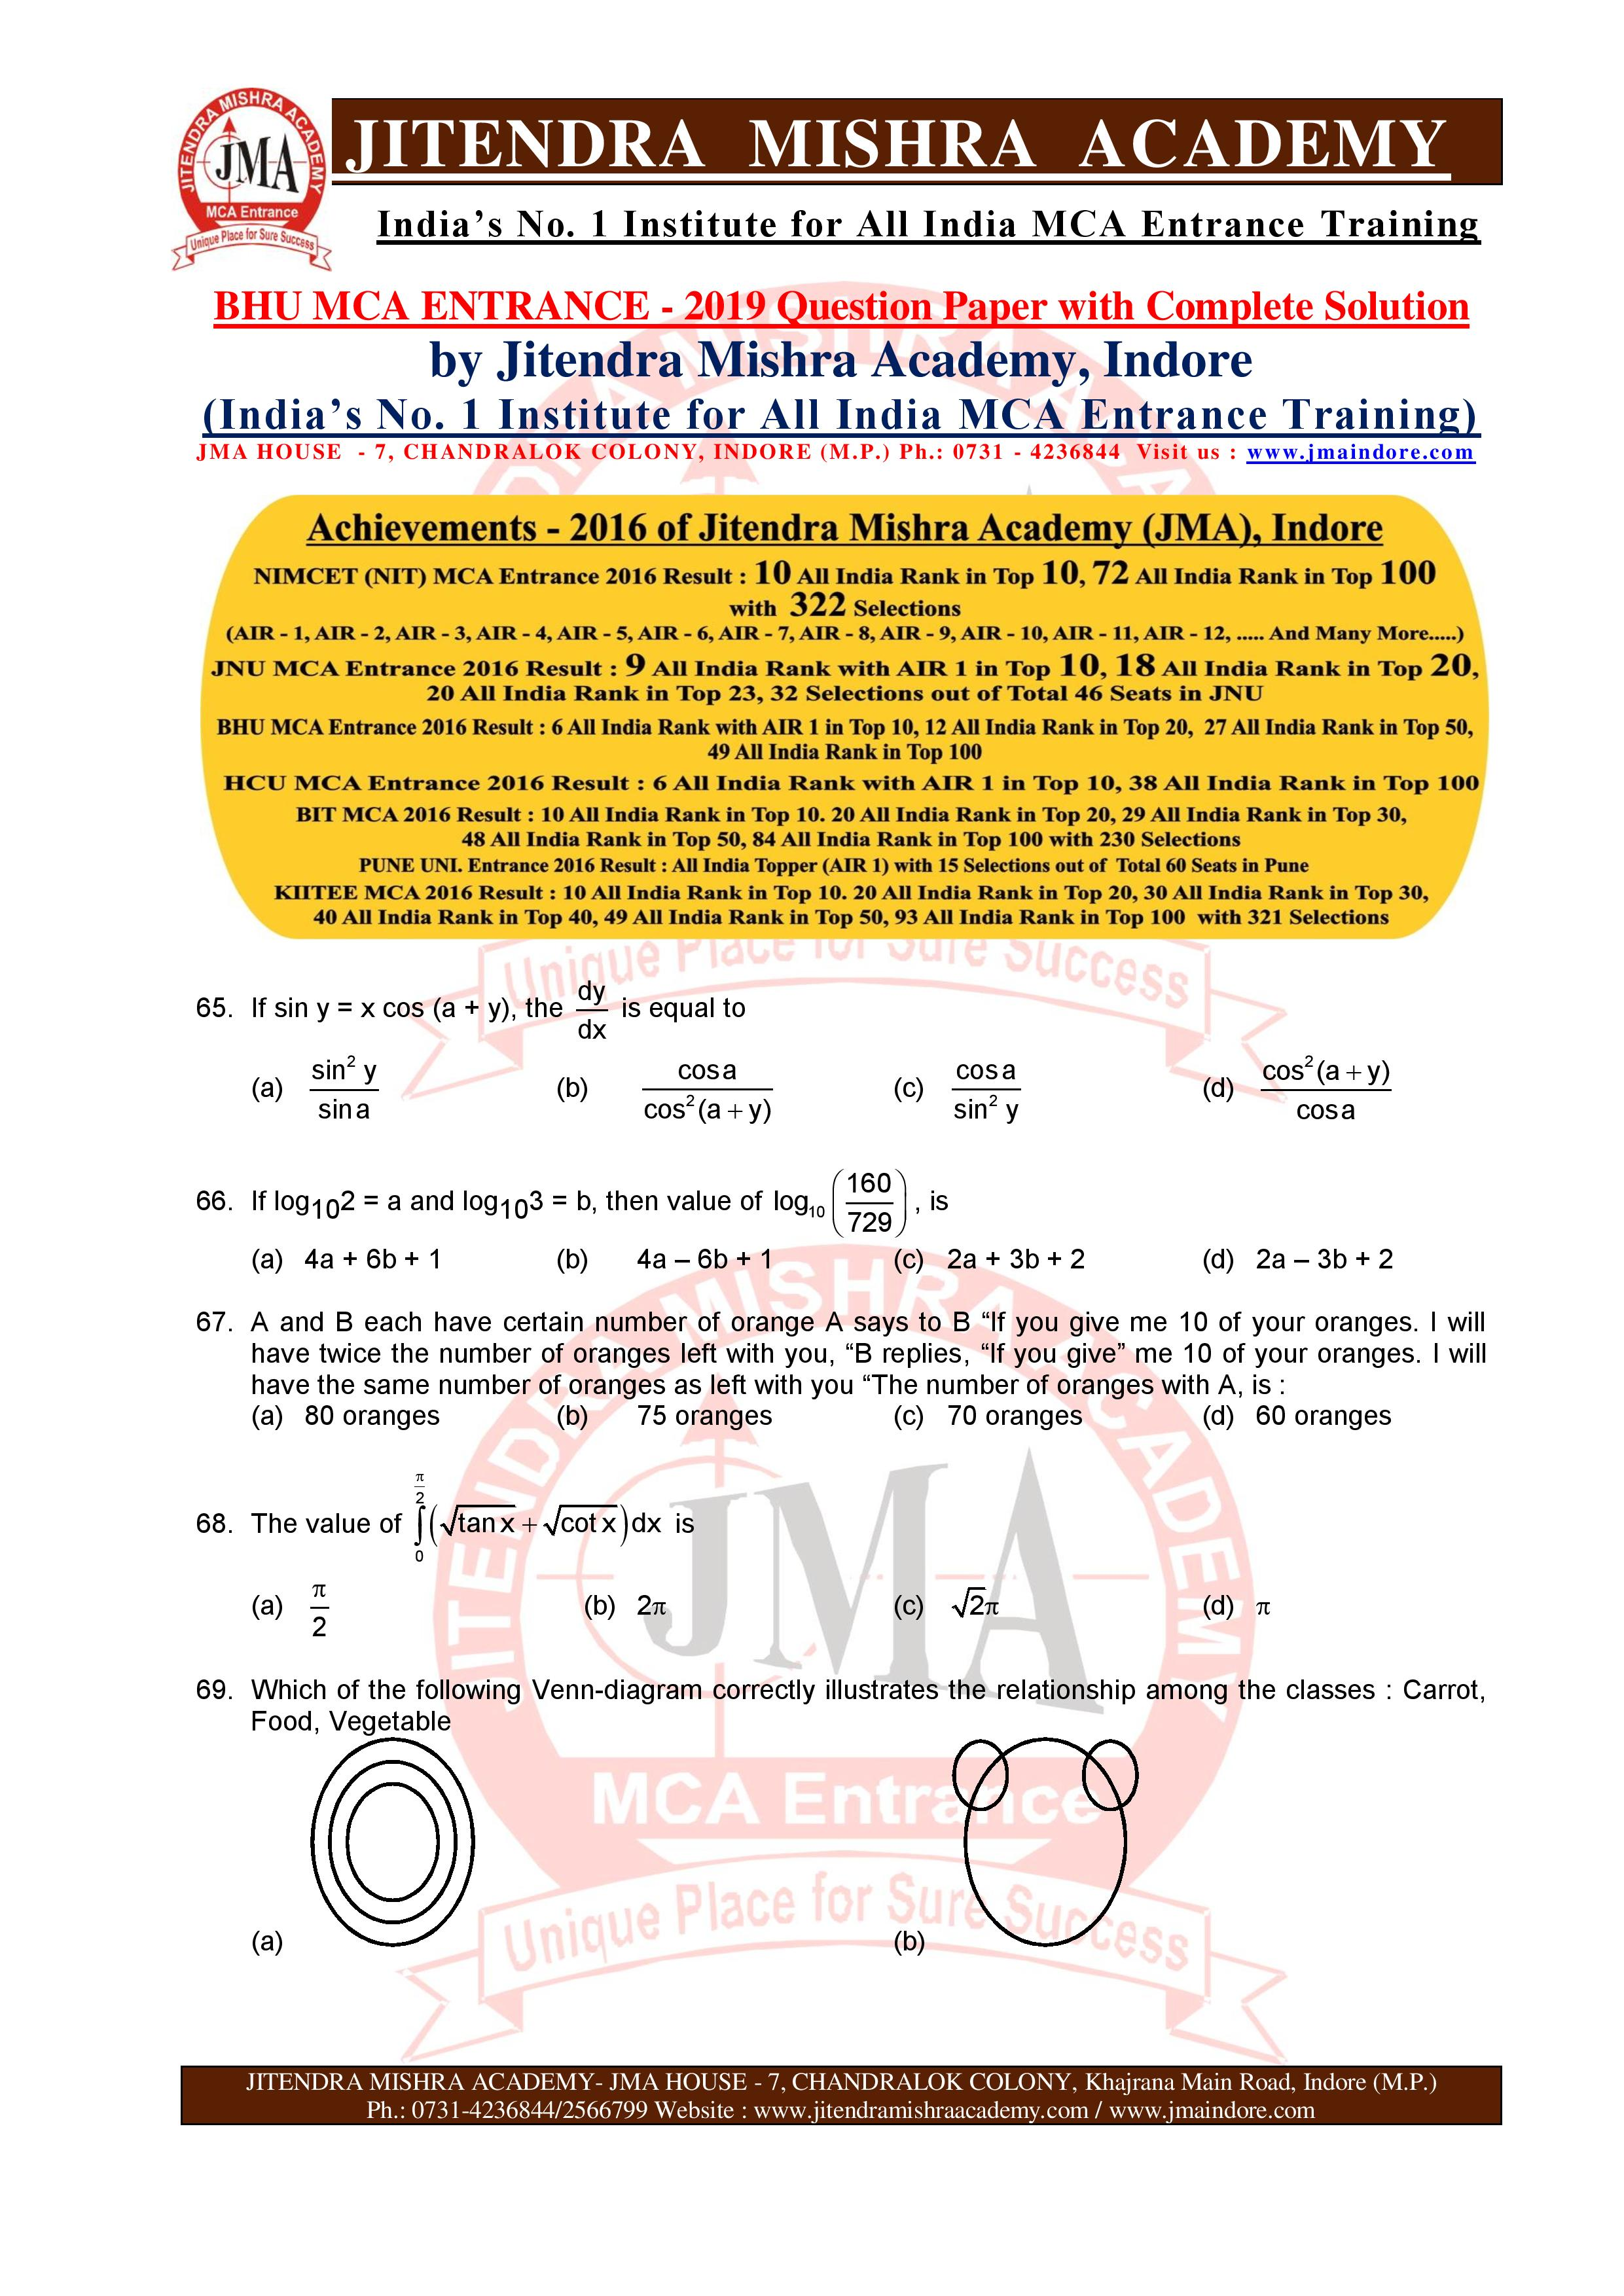 BHU MCA 2019 QUESTION PAPER-page-011